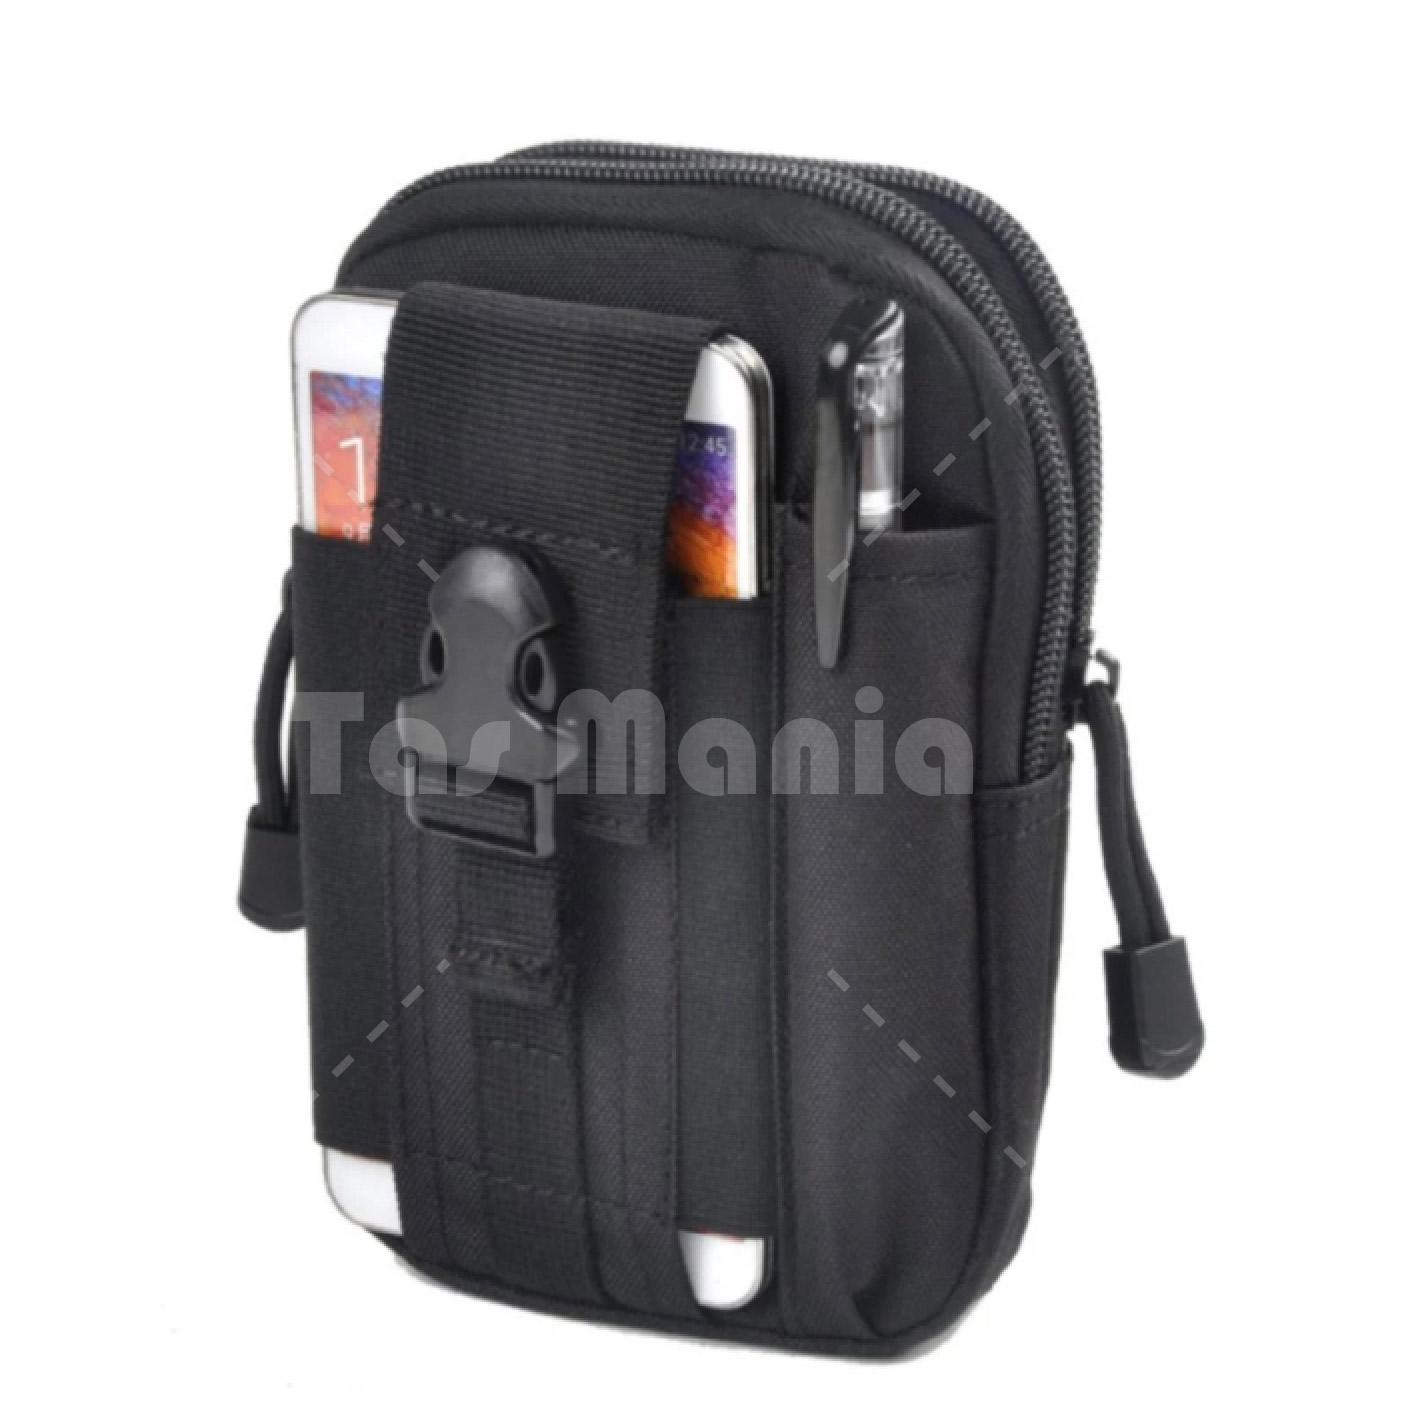 Tas Pinggang Pria Army Tactical Molle Import SA Waist Small Bag Military - Hitam Shoulder Bag Chest Bag Tas Selempang Slempang Cowok Canvas Kanvas Tas HP ...